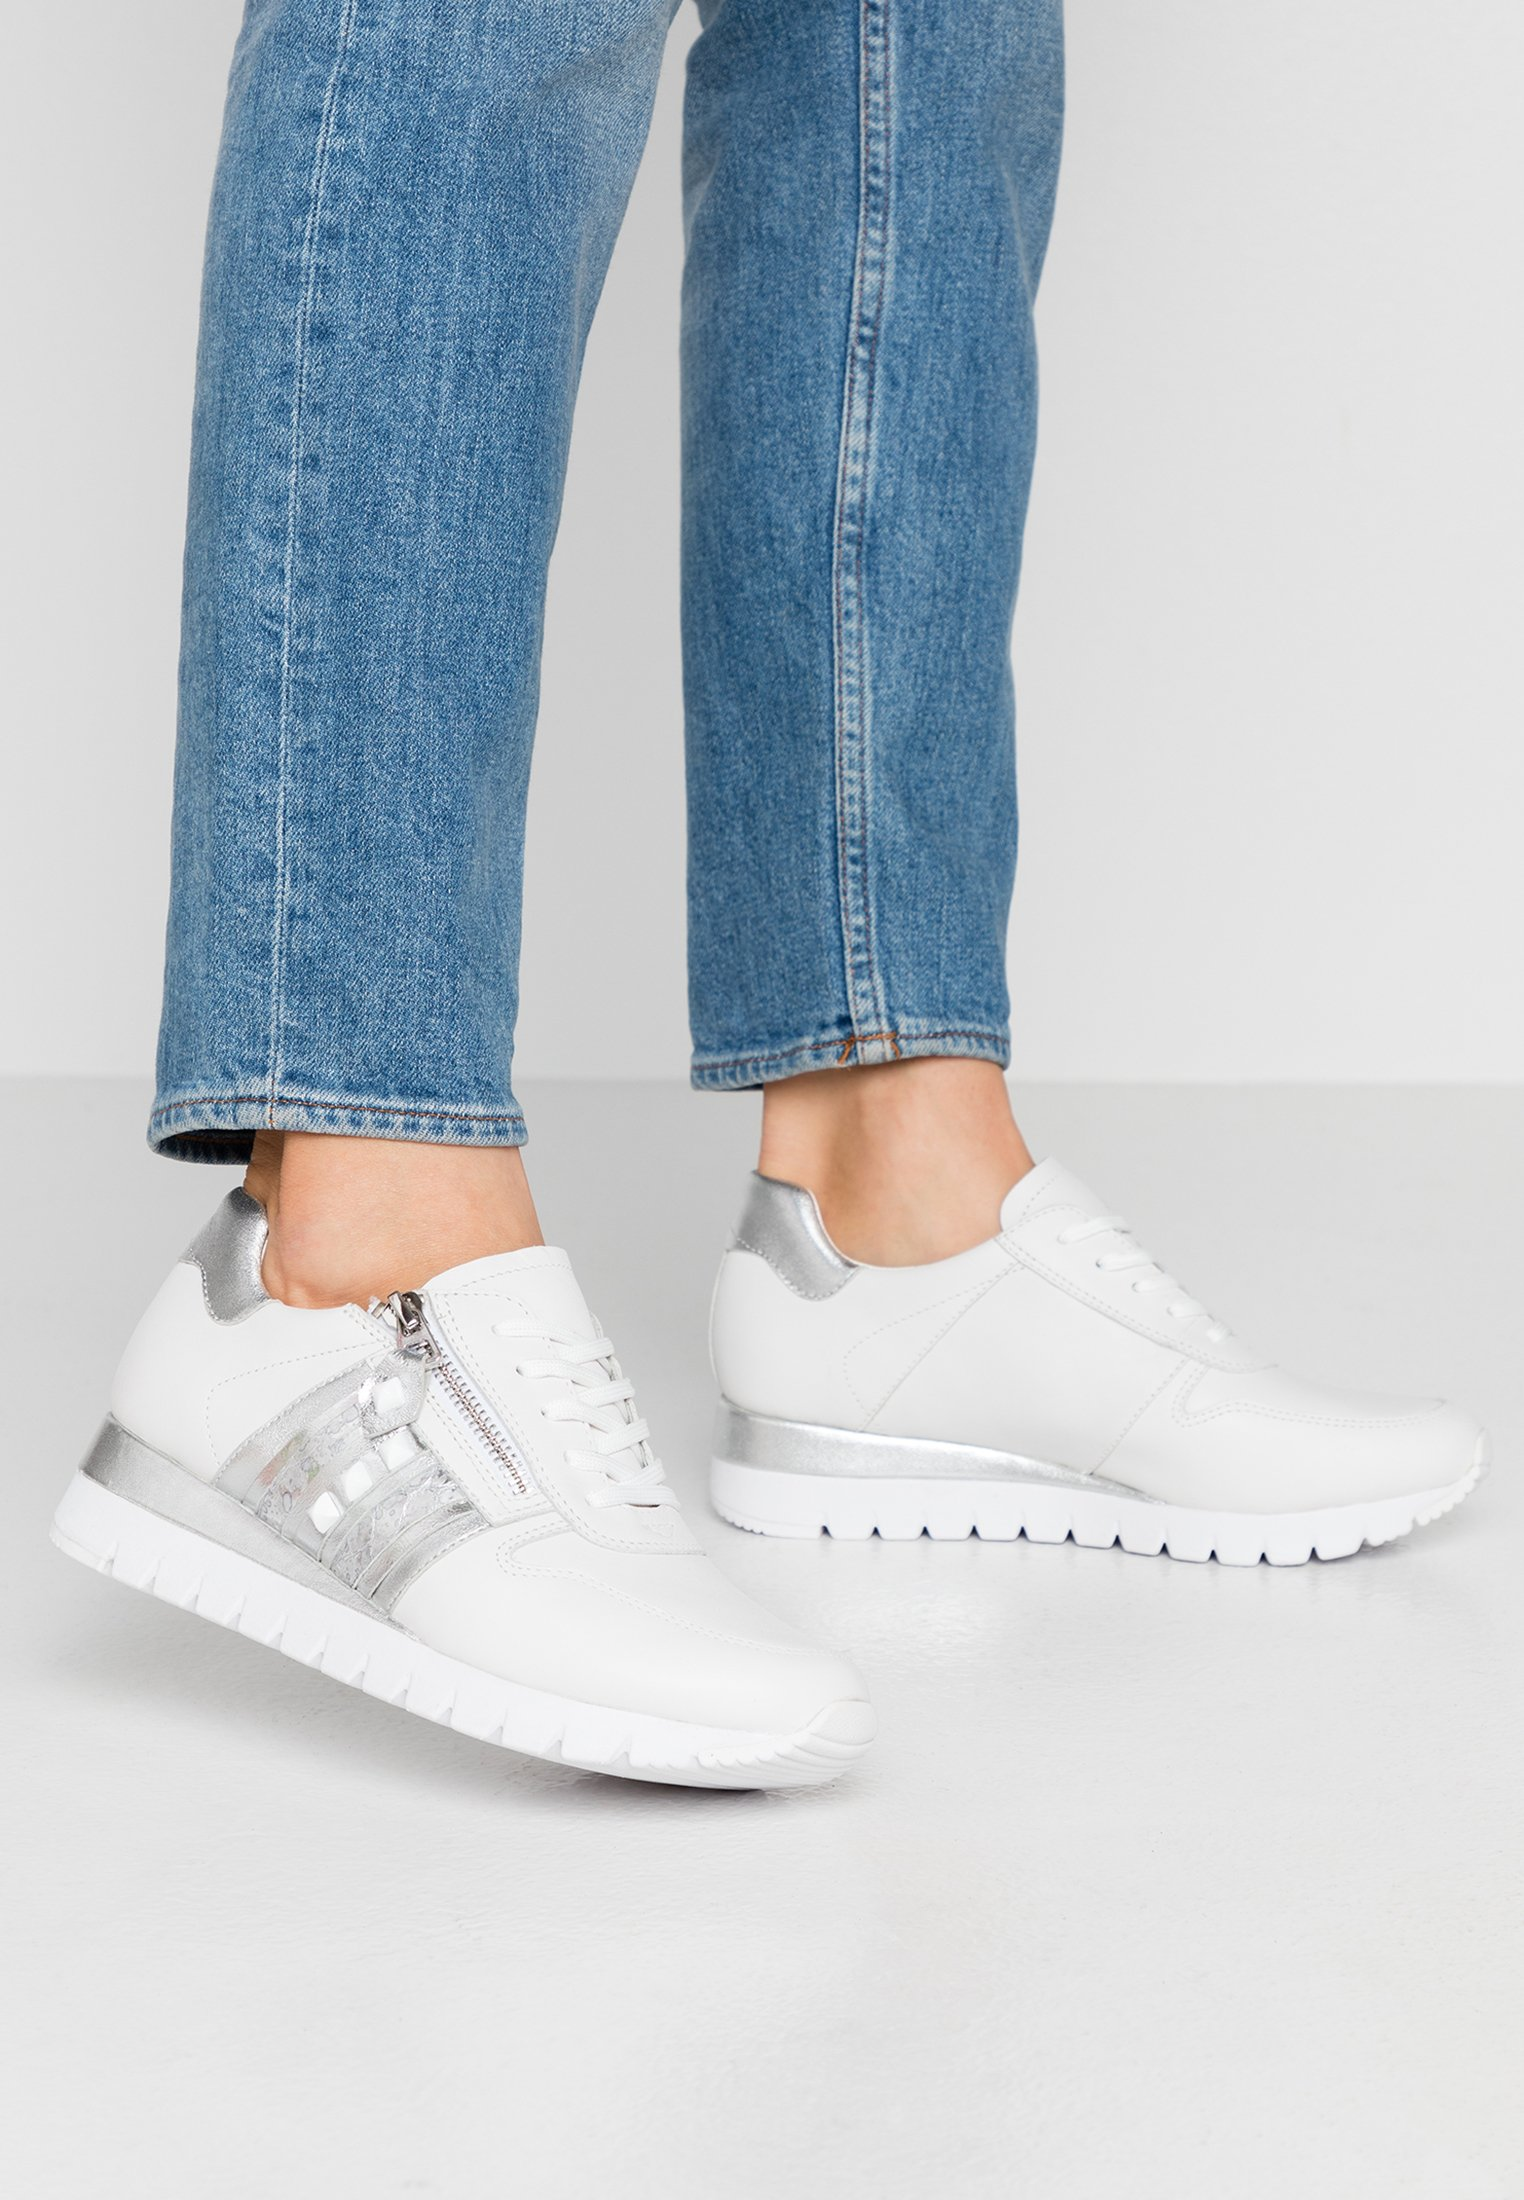 Caprice Sneakers - white/silver